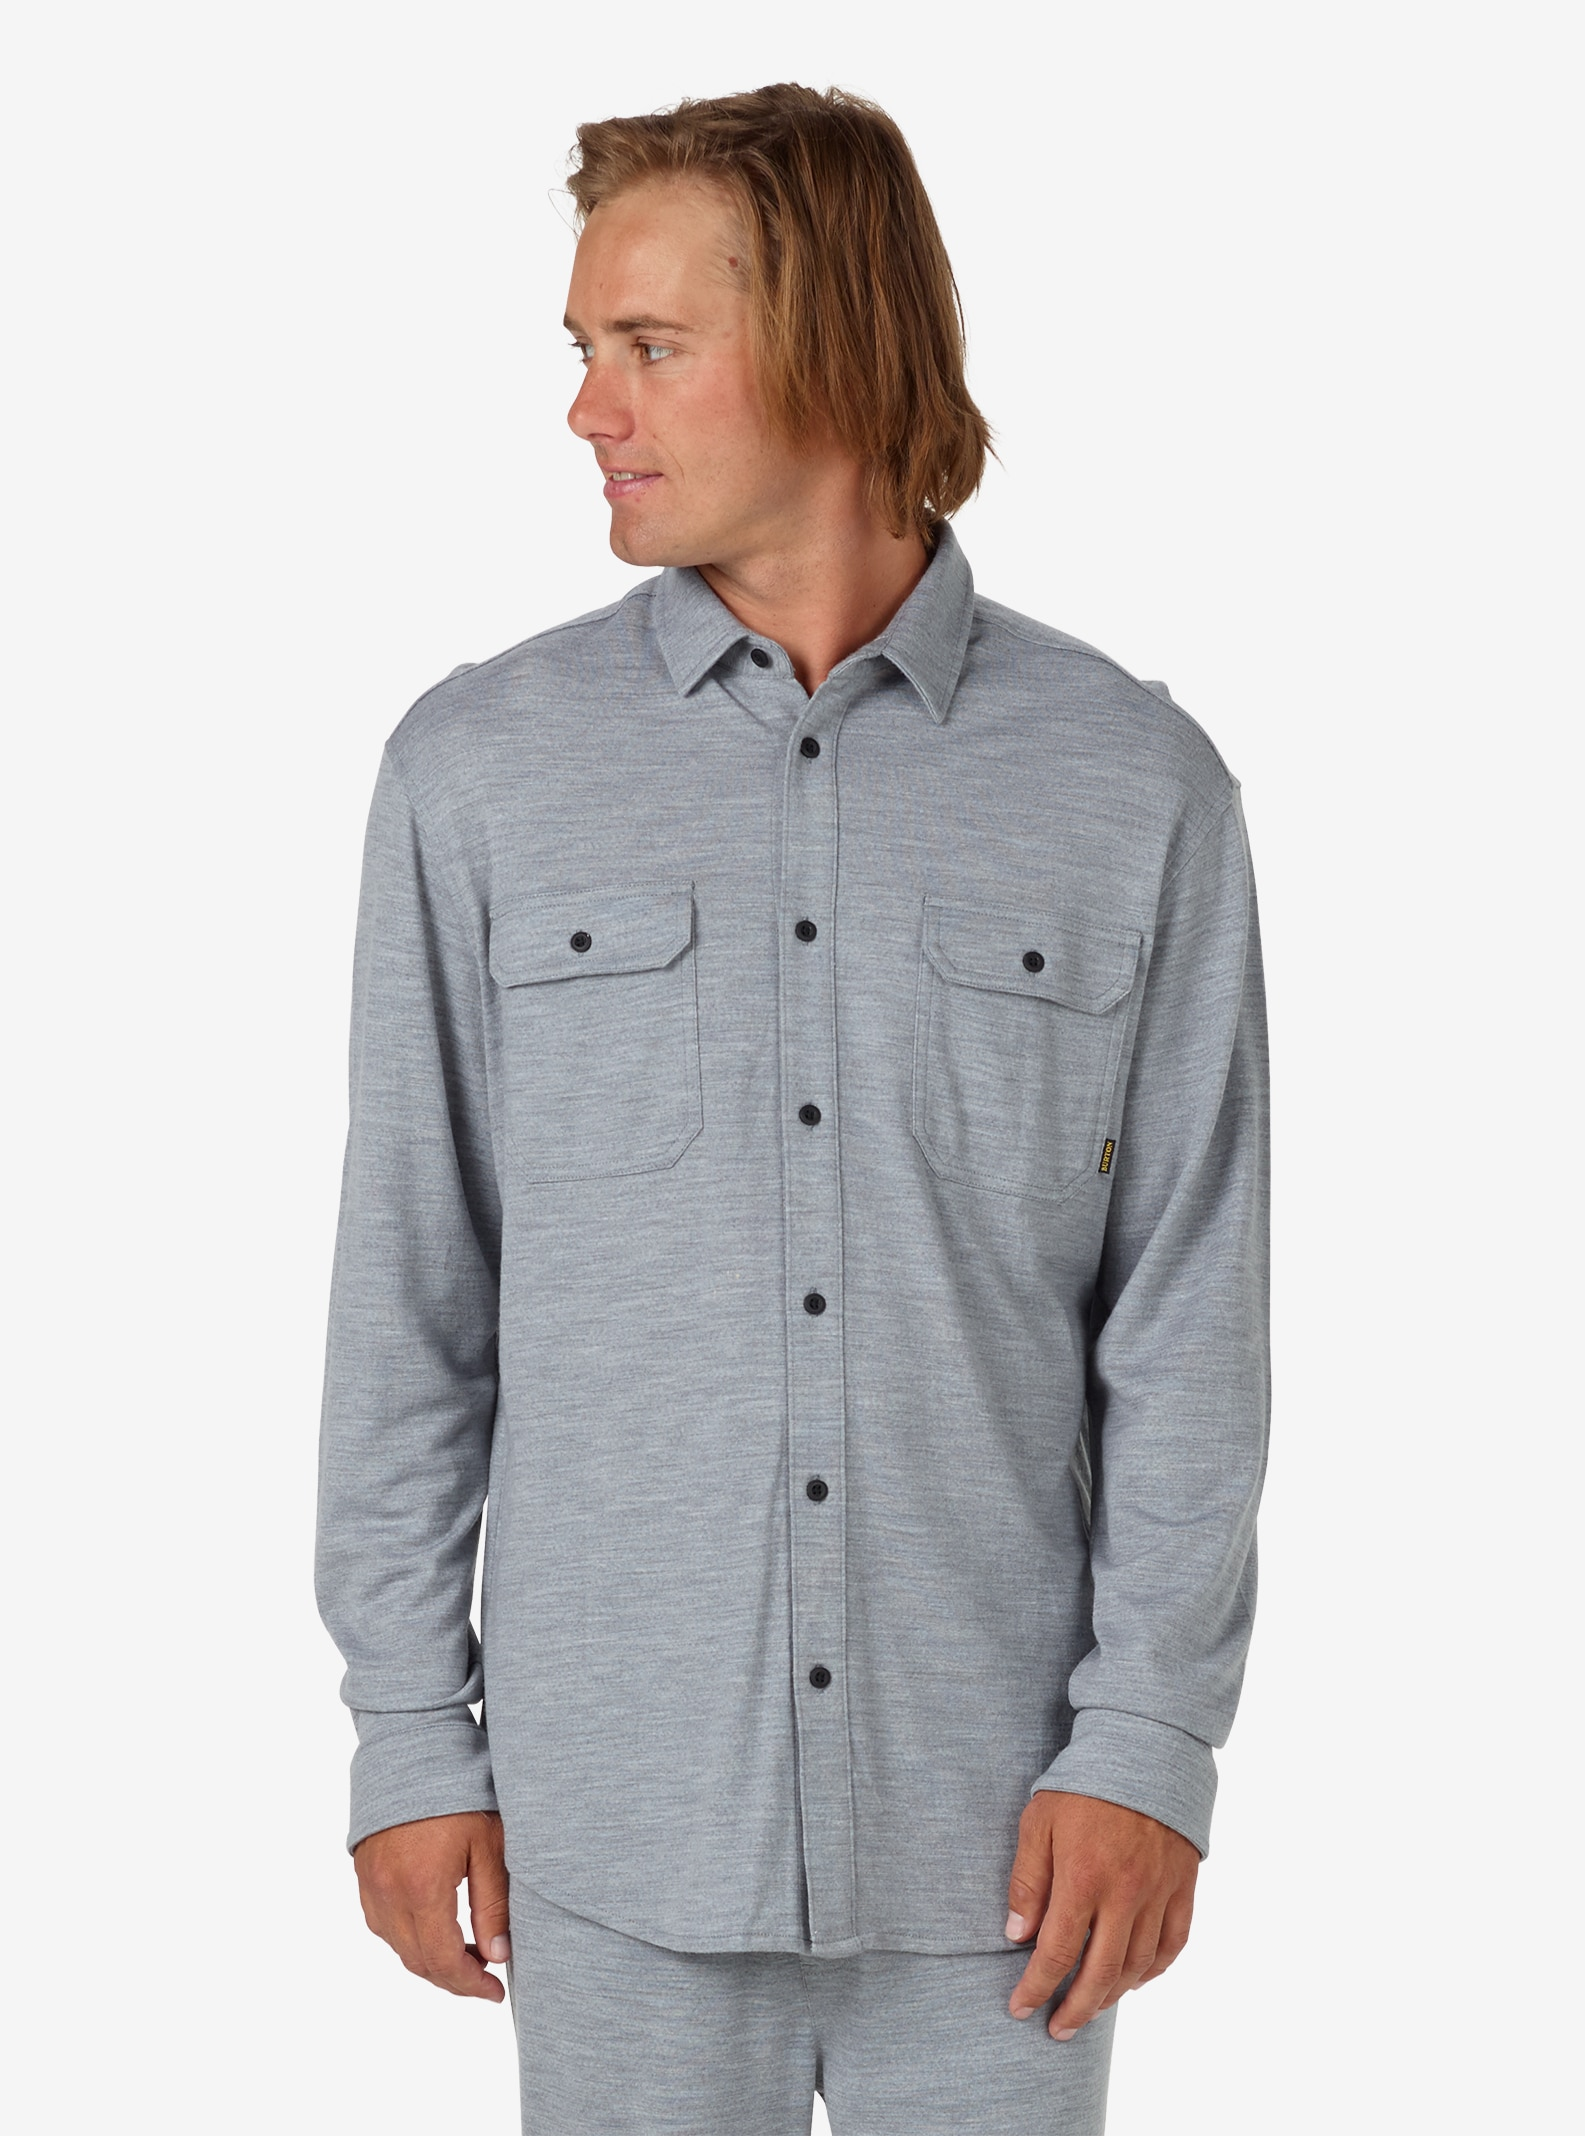 Men's Burton Midweight Merino Button Up shown in Monument Heather